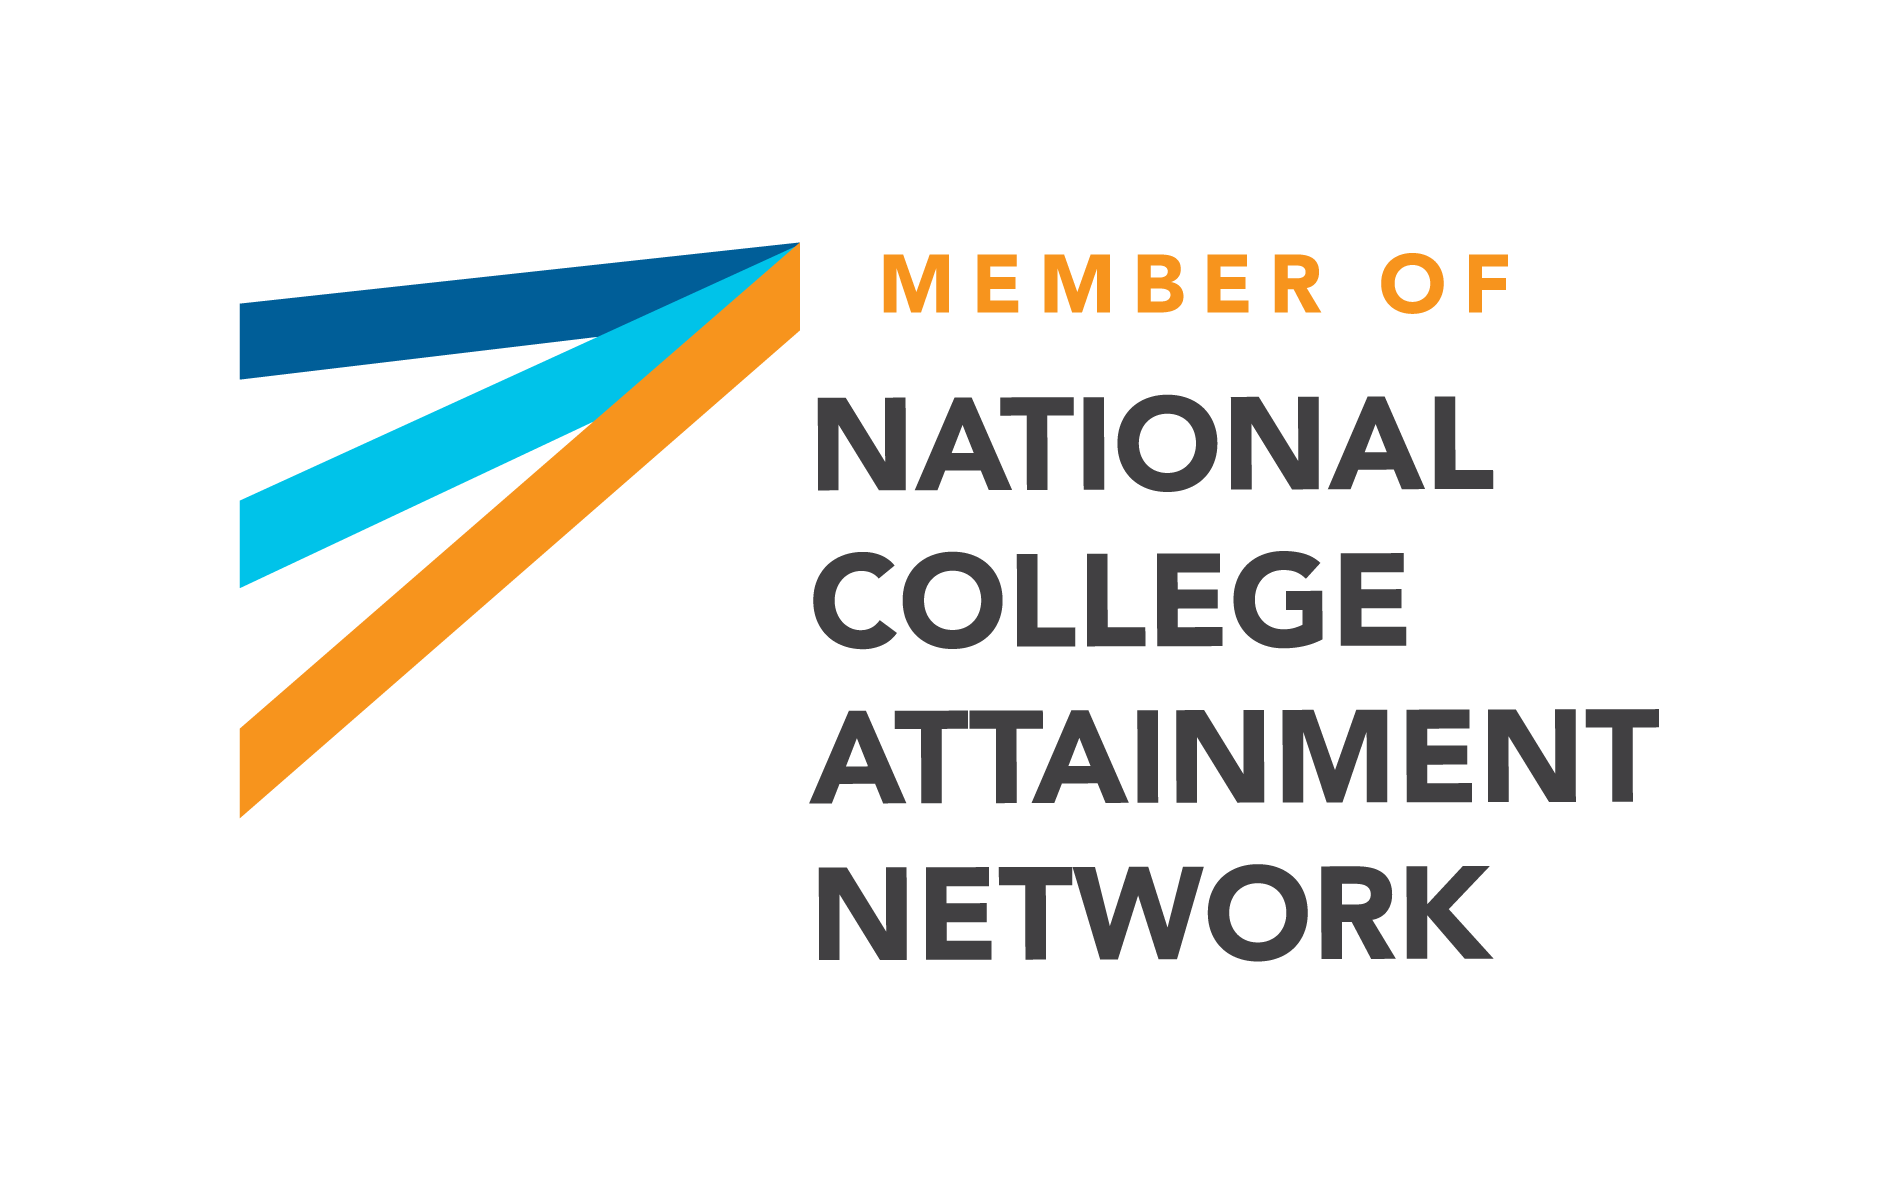 National College Attainment Network